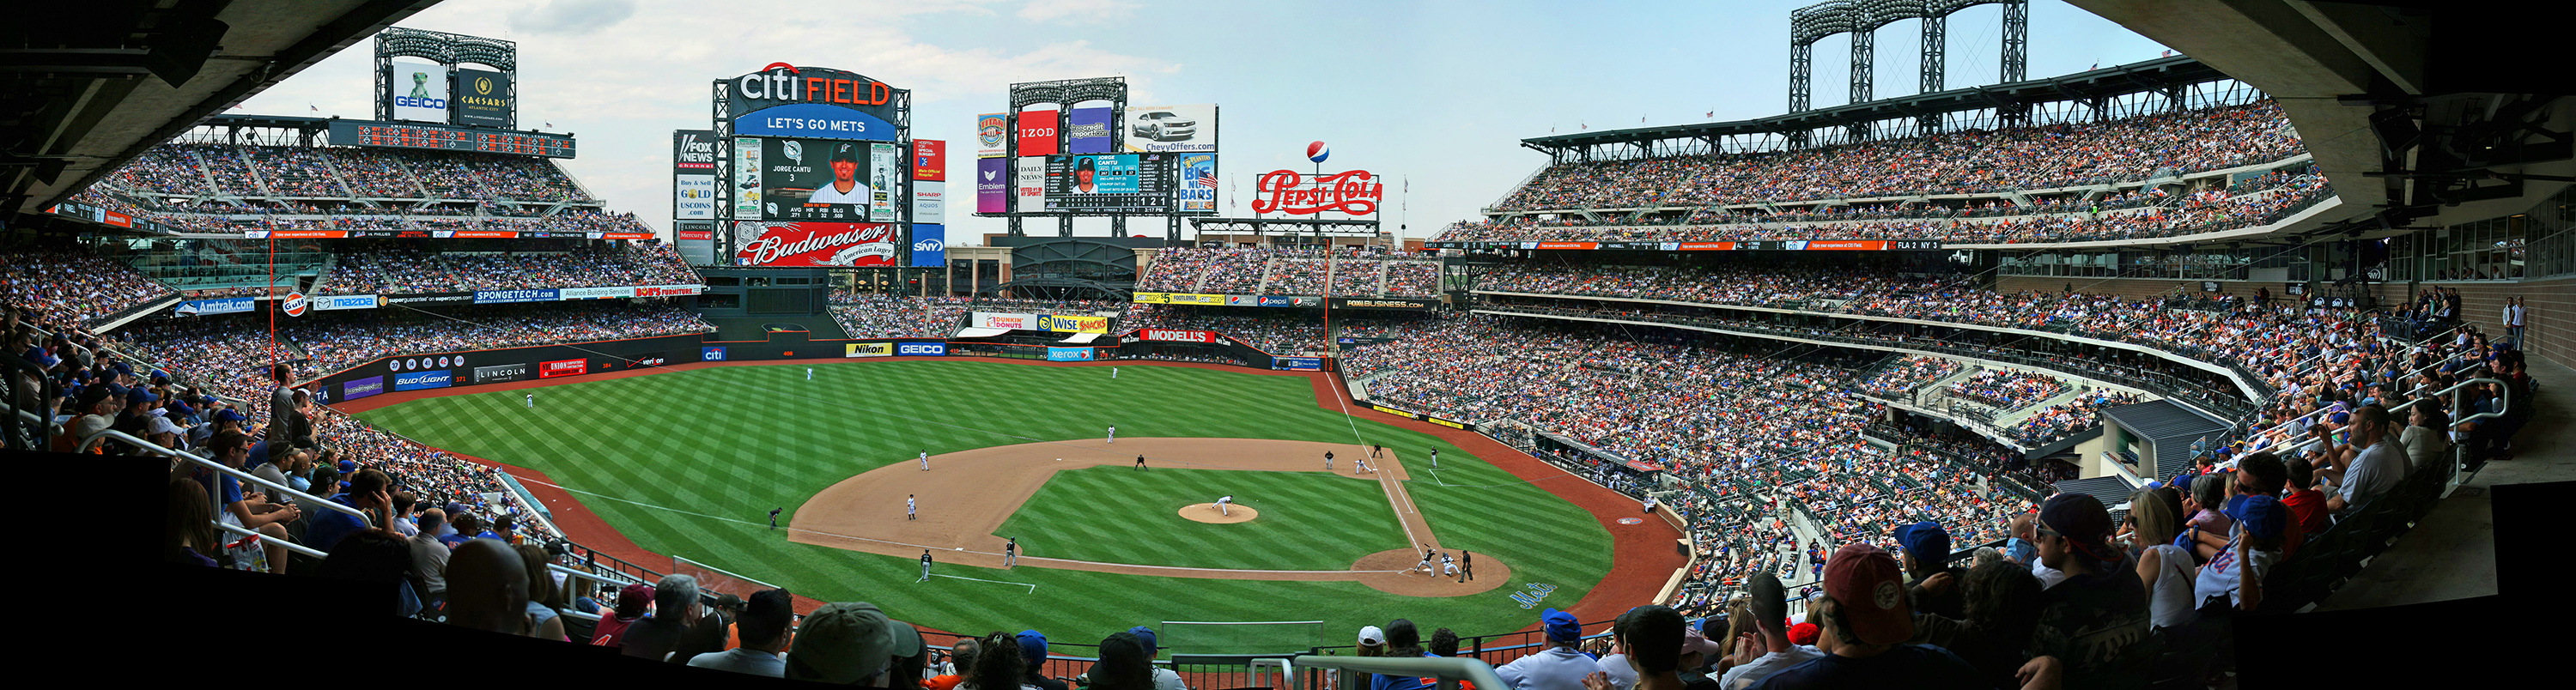 baseball field at Citifield